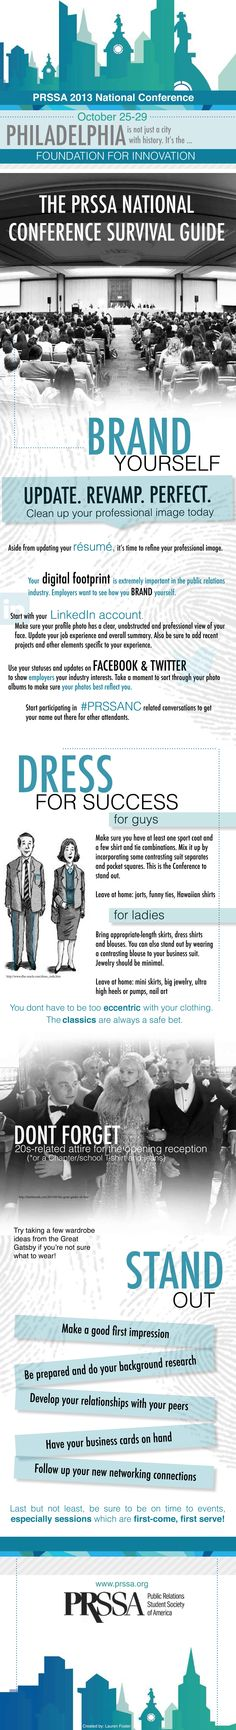 Before arriving in Philadelphia for the PRSSA 2013 National Conference, refer to our survival guide for all things Conference-related. Visit the National Conference website, Facebook and Twitter for more information.